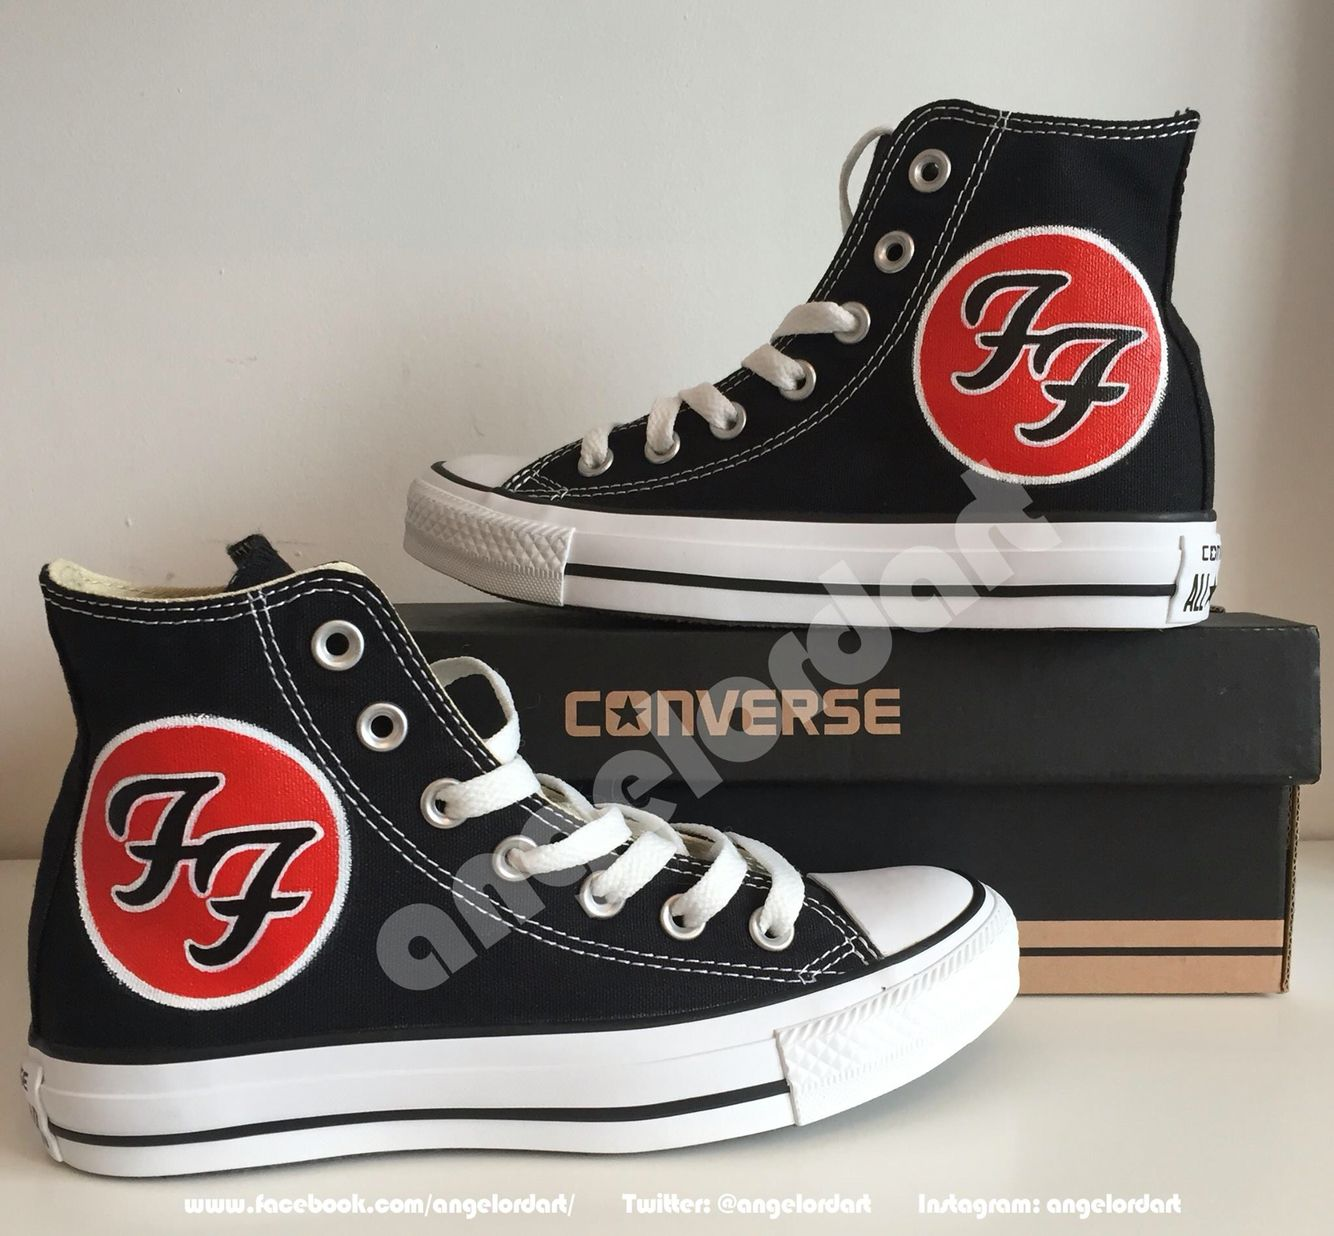 Walking dead converse shoes for sale - Custom Painted Foo Fighters Converse Hi Tops Shoes Sneakers Facebook Com Angelordart